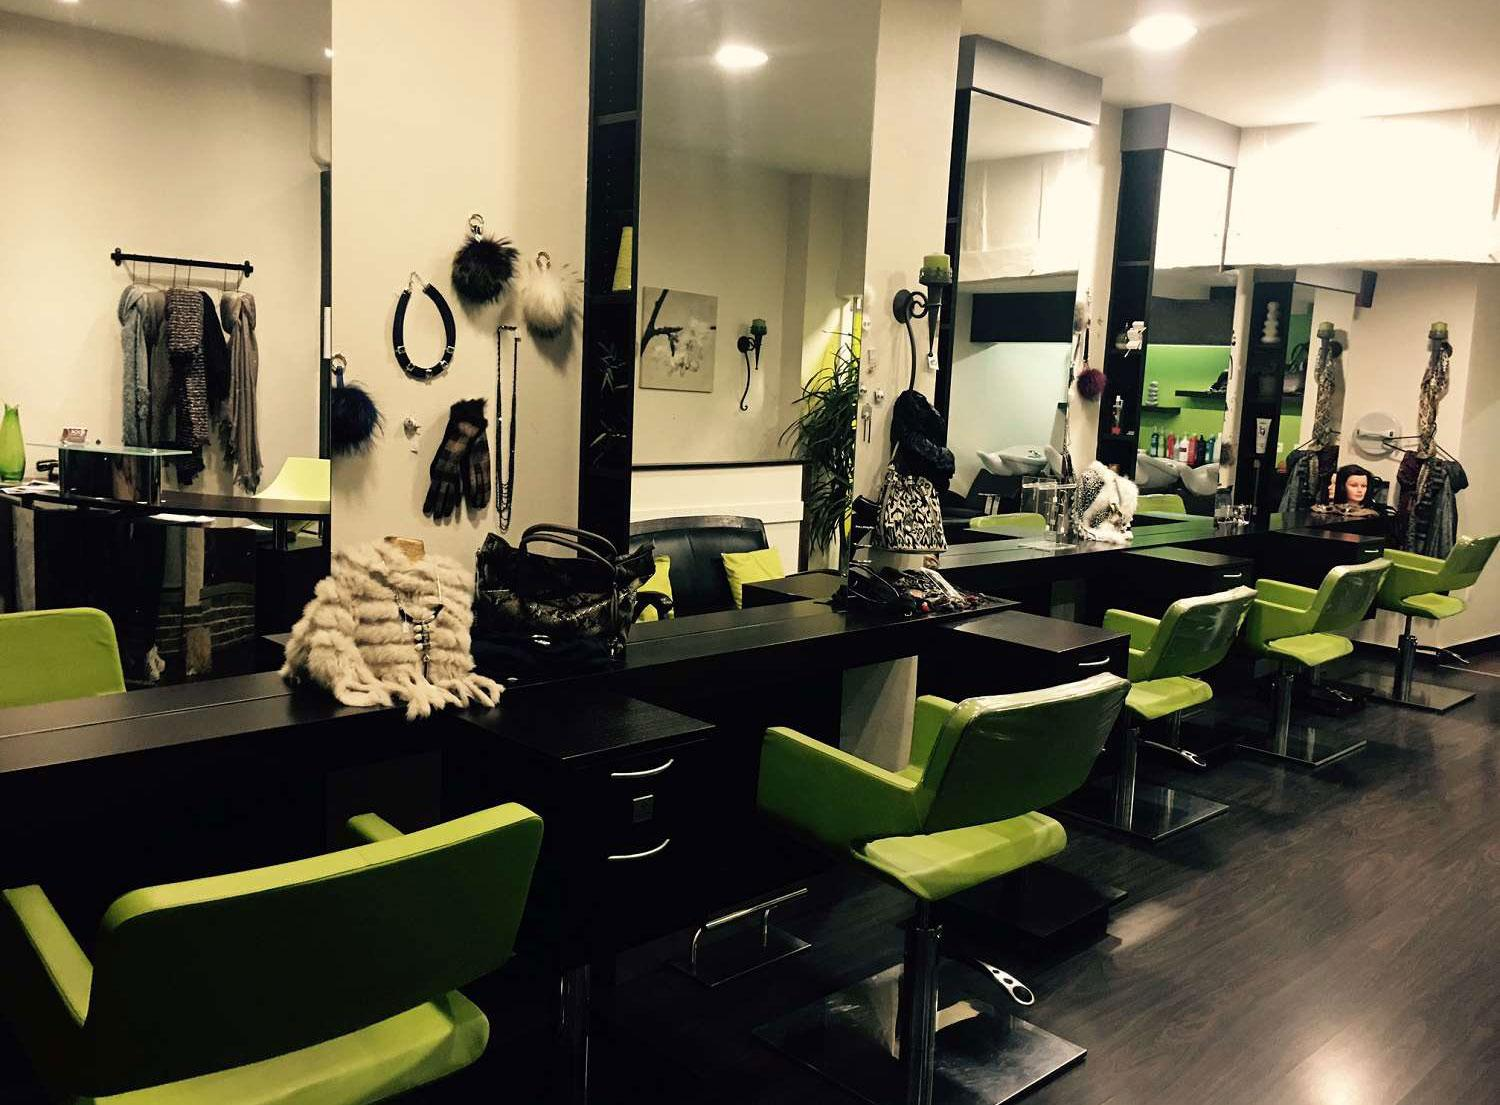 edge coiffure troyes,Coiffure,Coiffeur homme,Coiffure femme ...